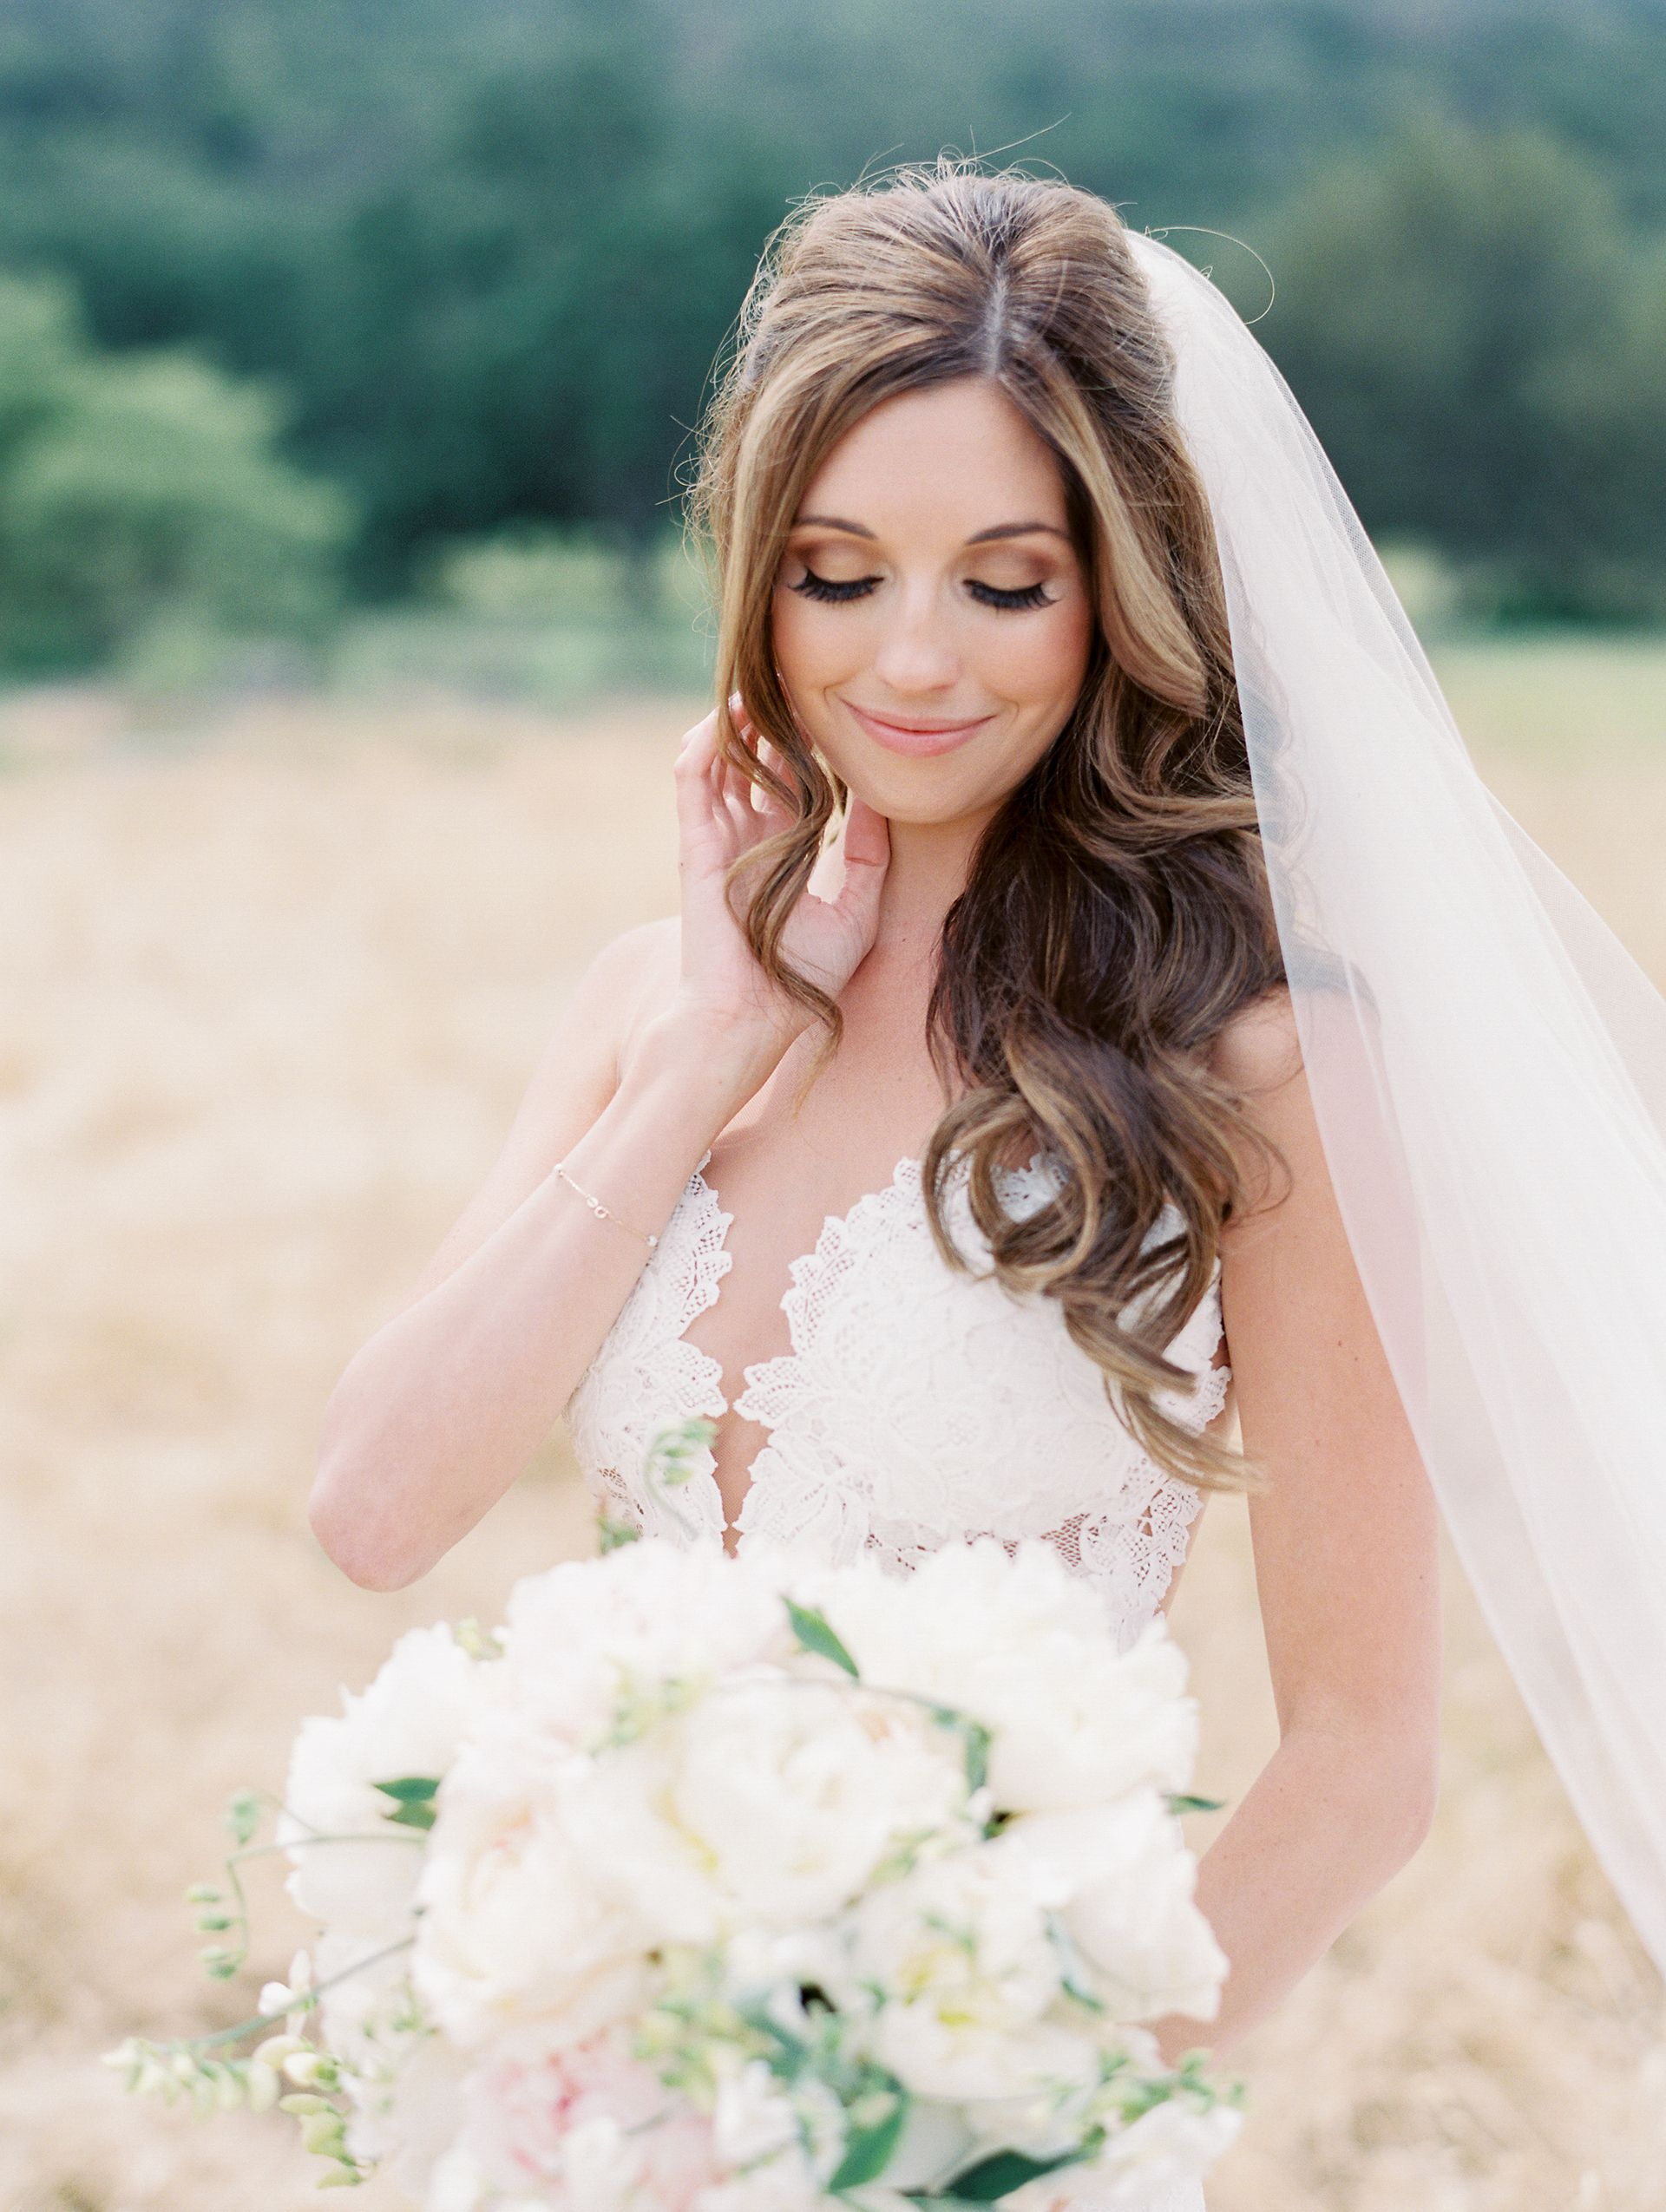 Teased half updo, romantic bridal curls, classic veil